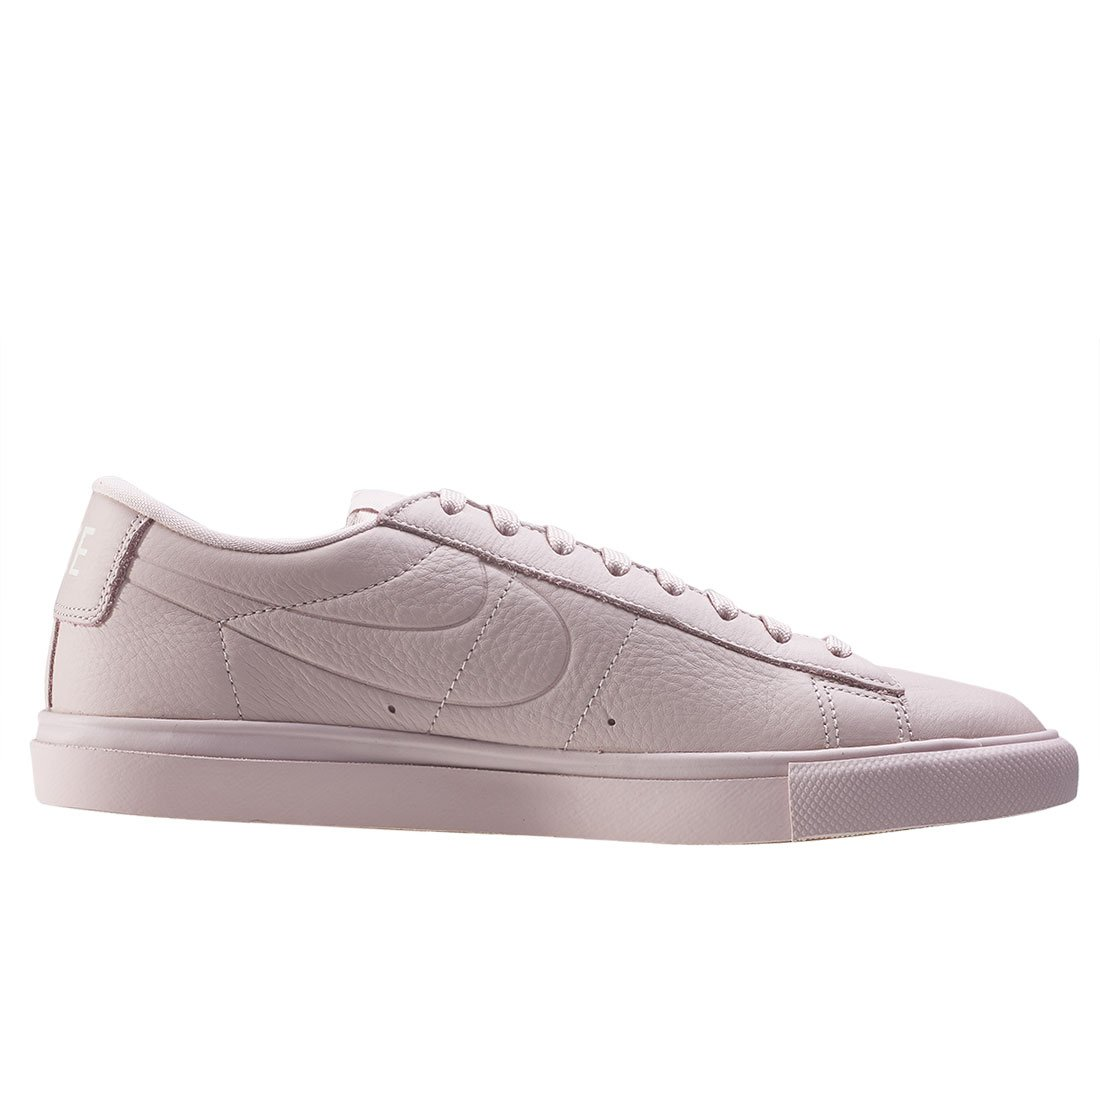 best sneakers 6bb46 0748c Zapatillas Nike - Blazer Low rosa/rosa/marrón talla: 43: Amazon.es: Zapatos  y complementos